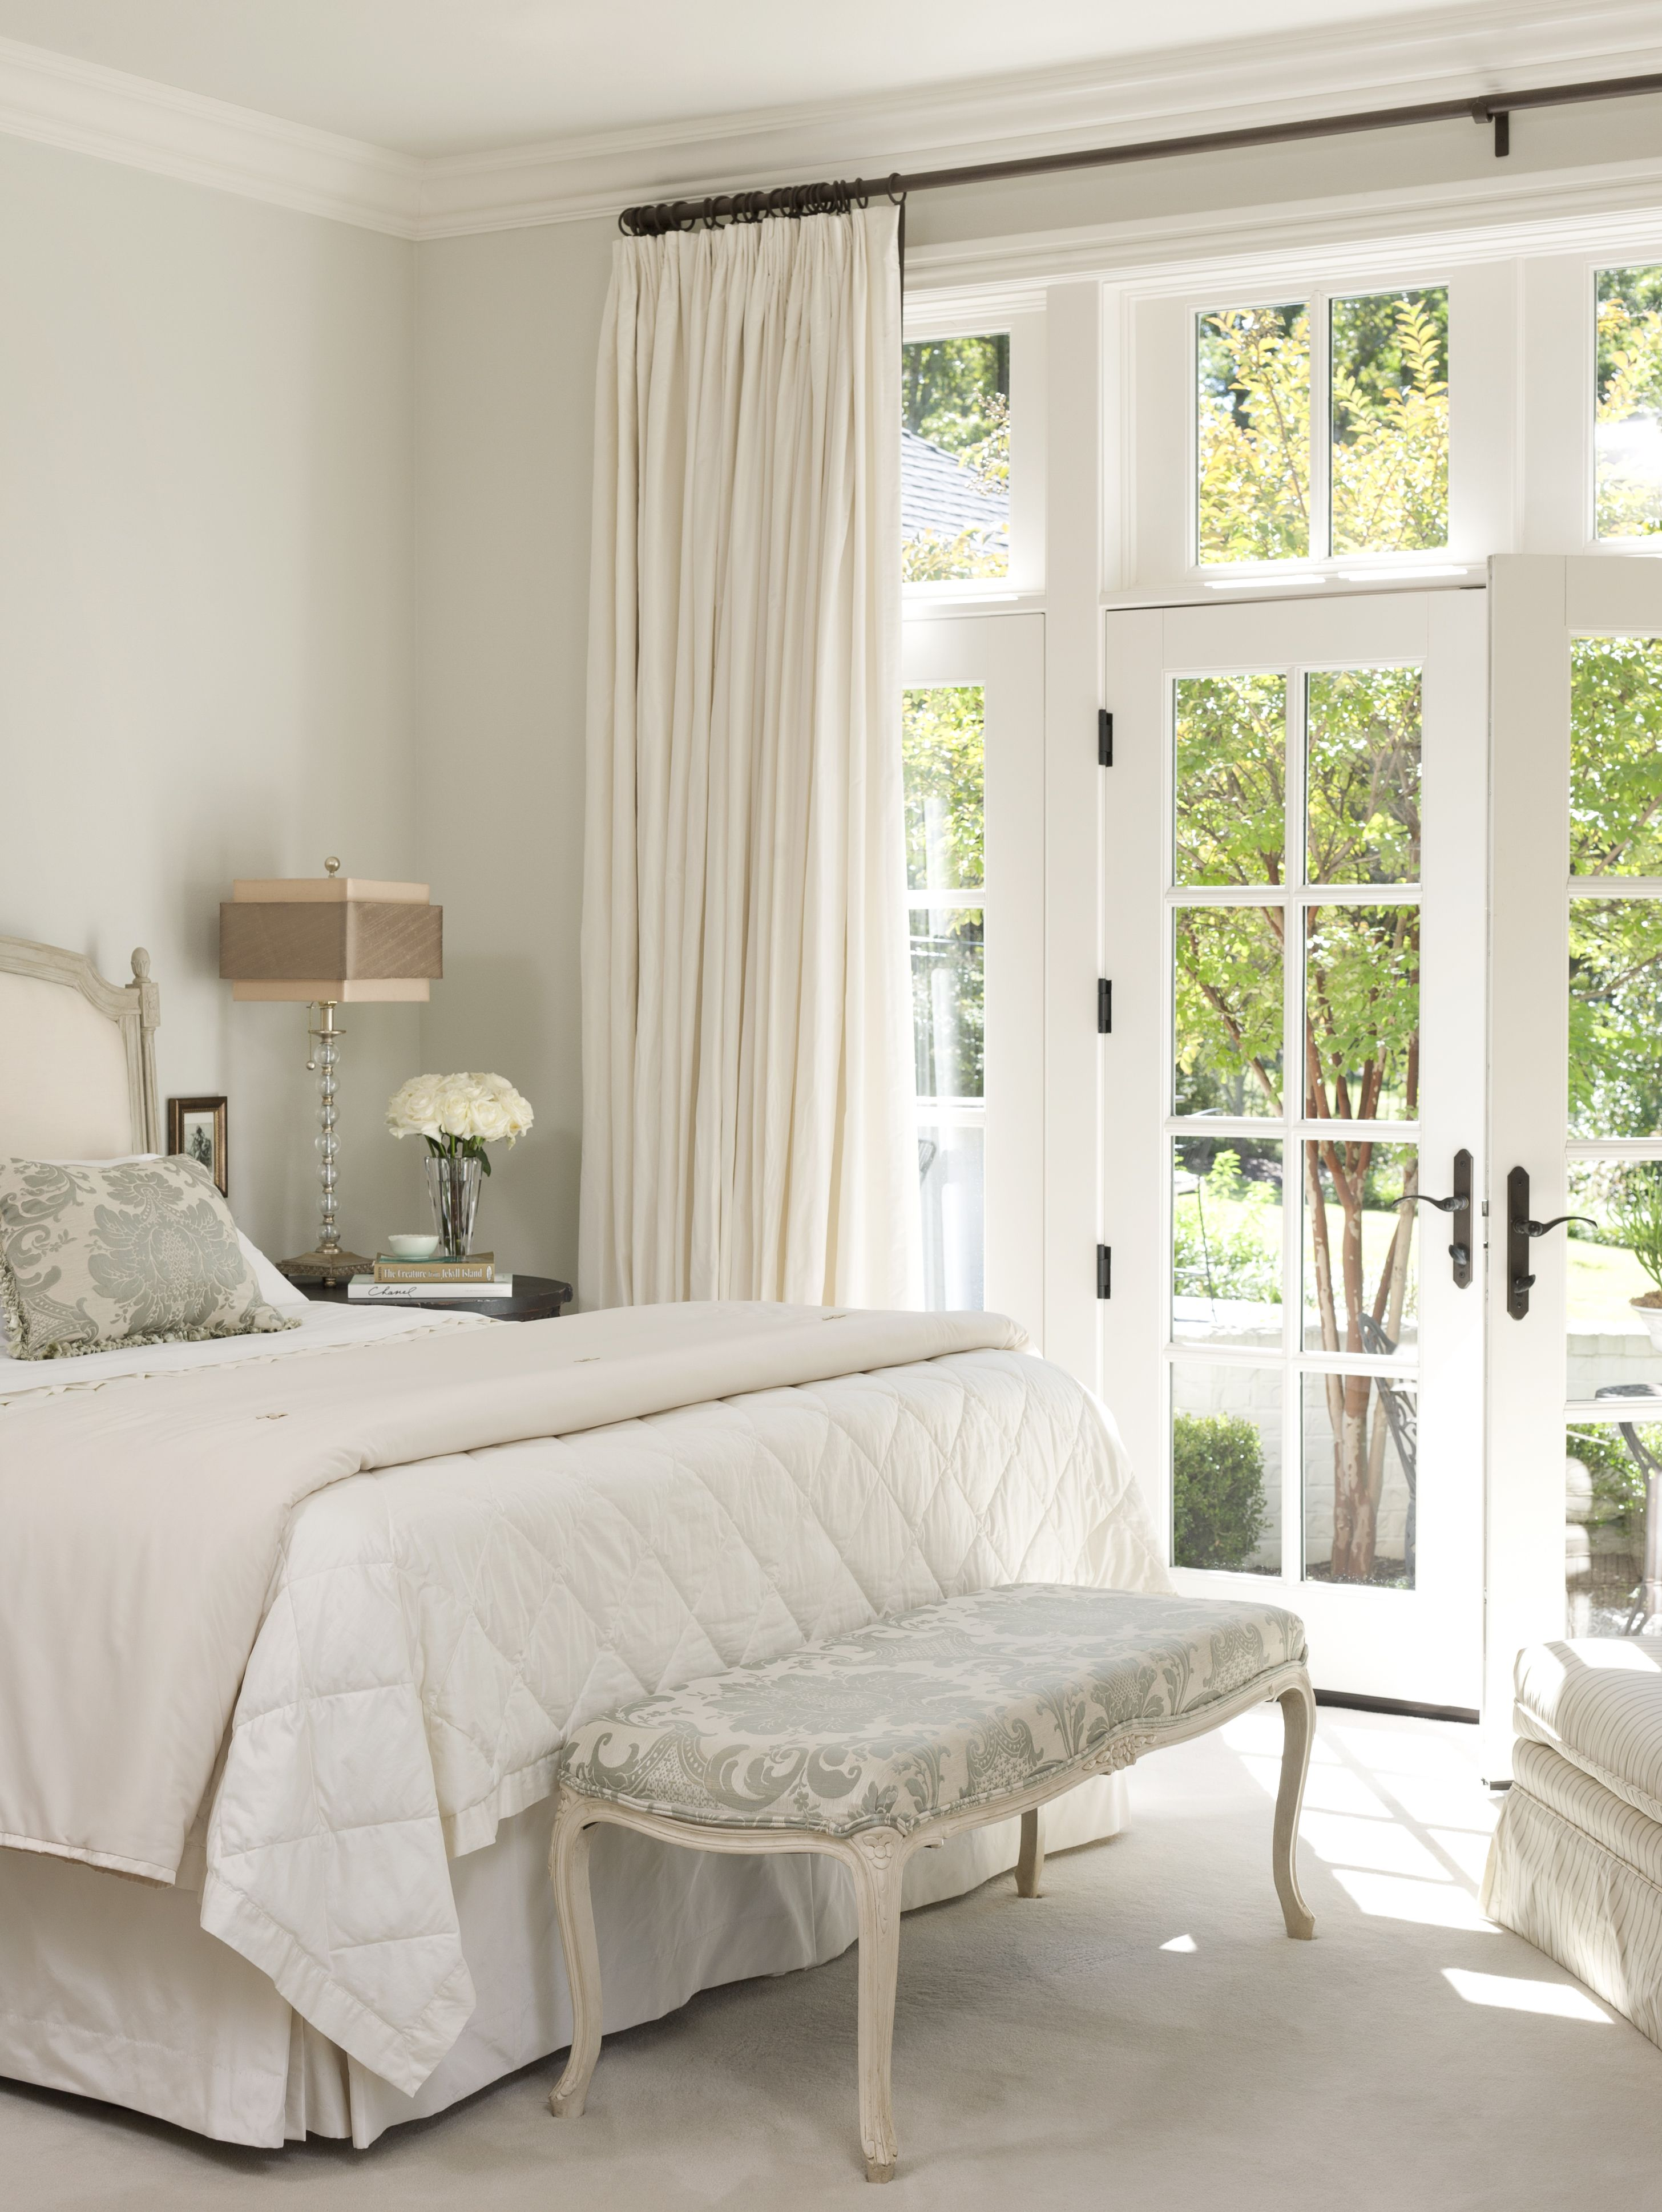 in the master bedroom french doors lead to the courtyard silk draperies and bedding - Masterschlafzimmerdesignplne